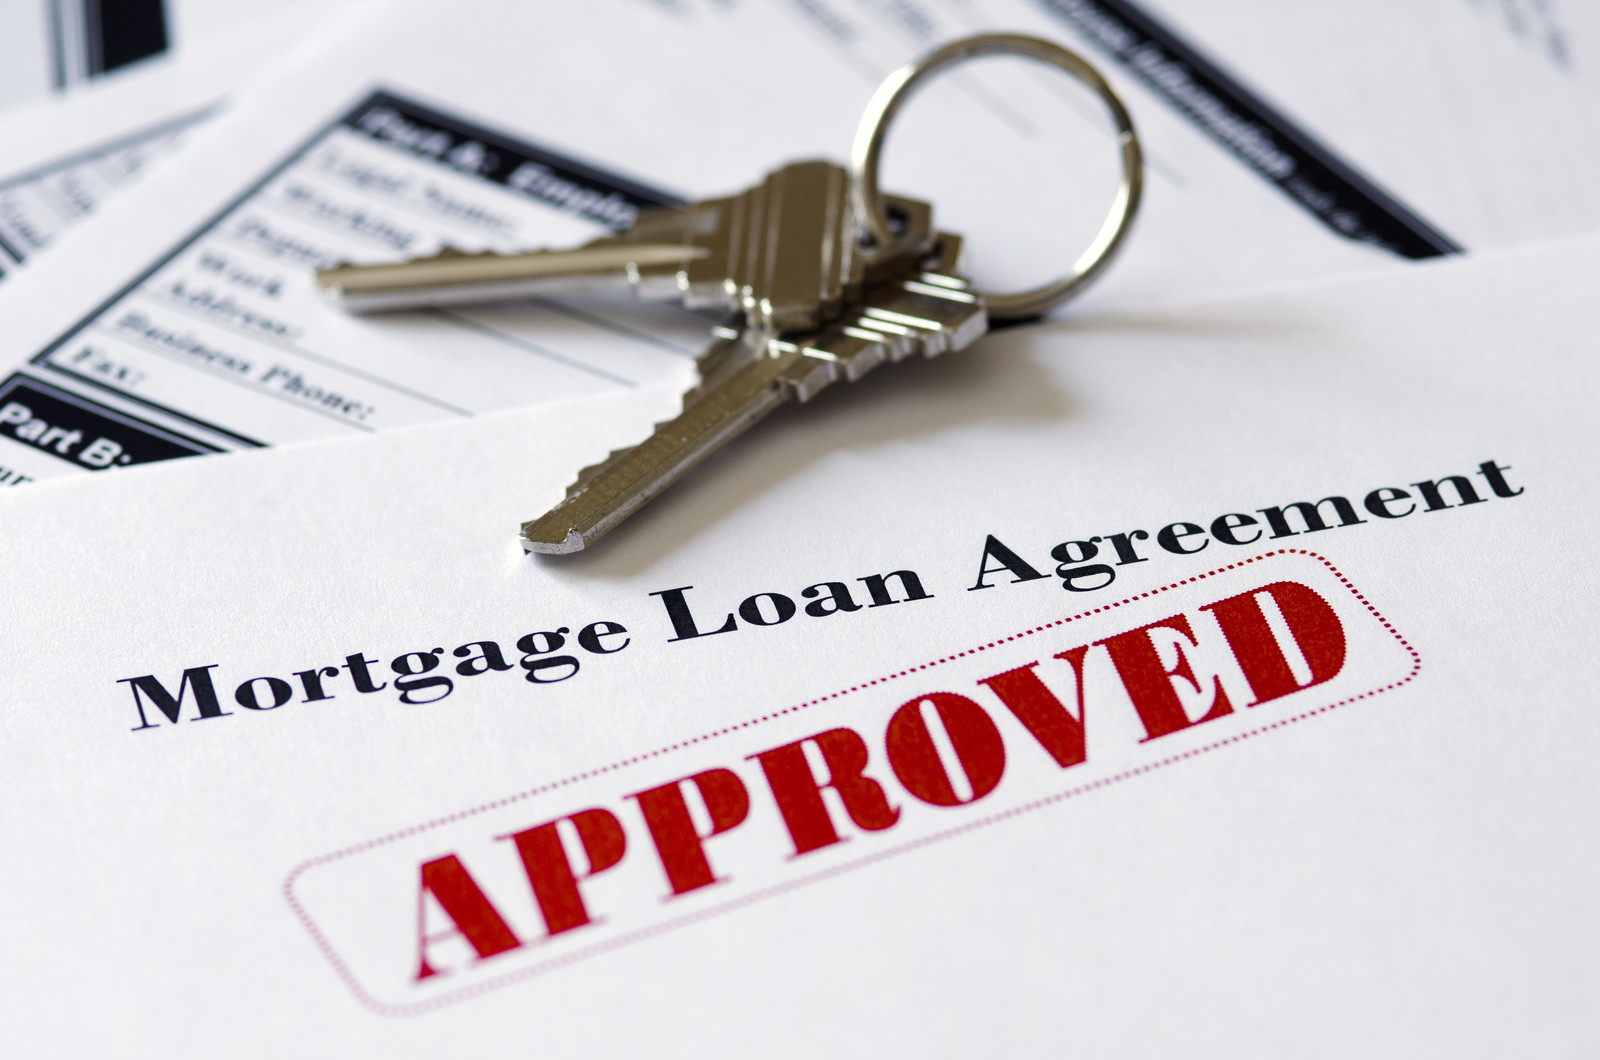 REAL ESTATE MORTGAGE AGREEMENT WITH A RED STAMP STATING APPROVED WITH A SET OF HOUSE KEYS SITTING ON TOP